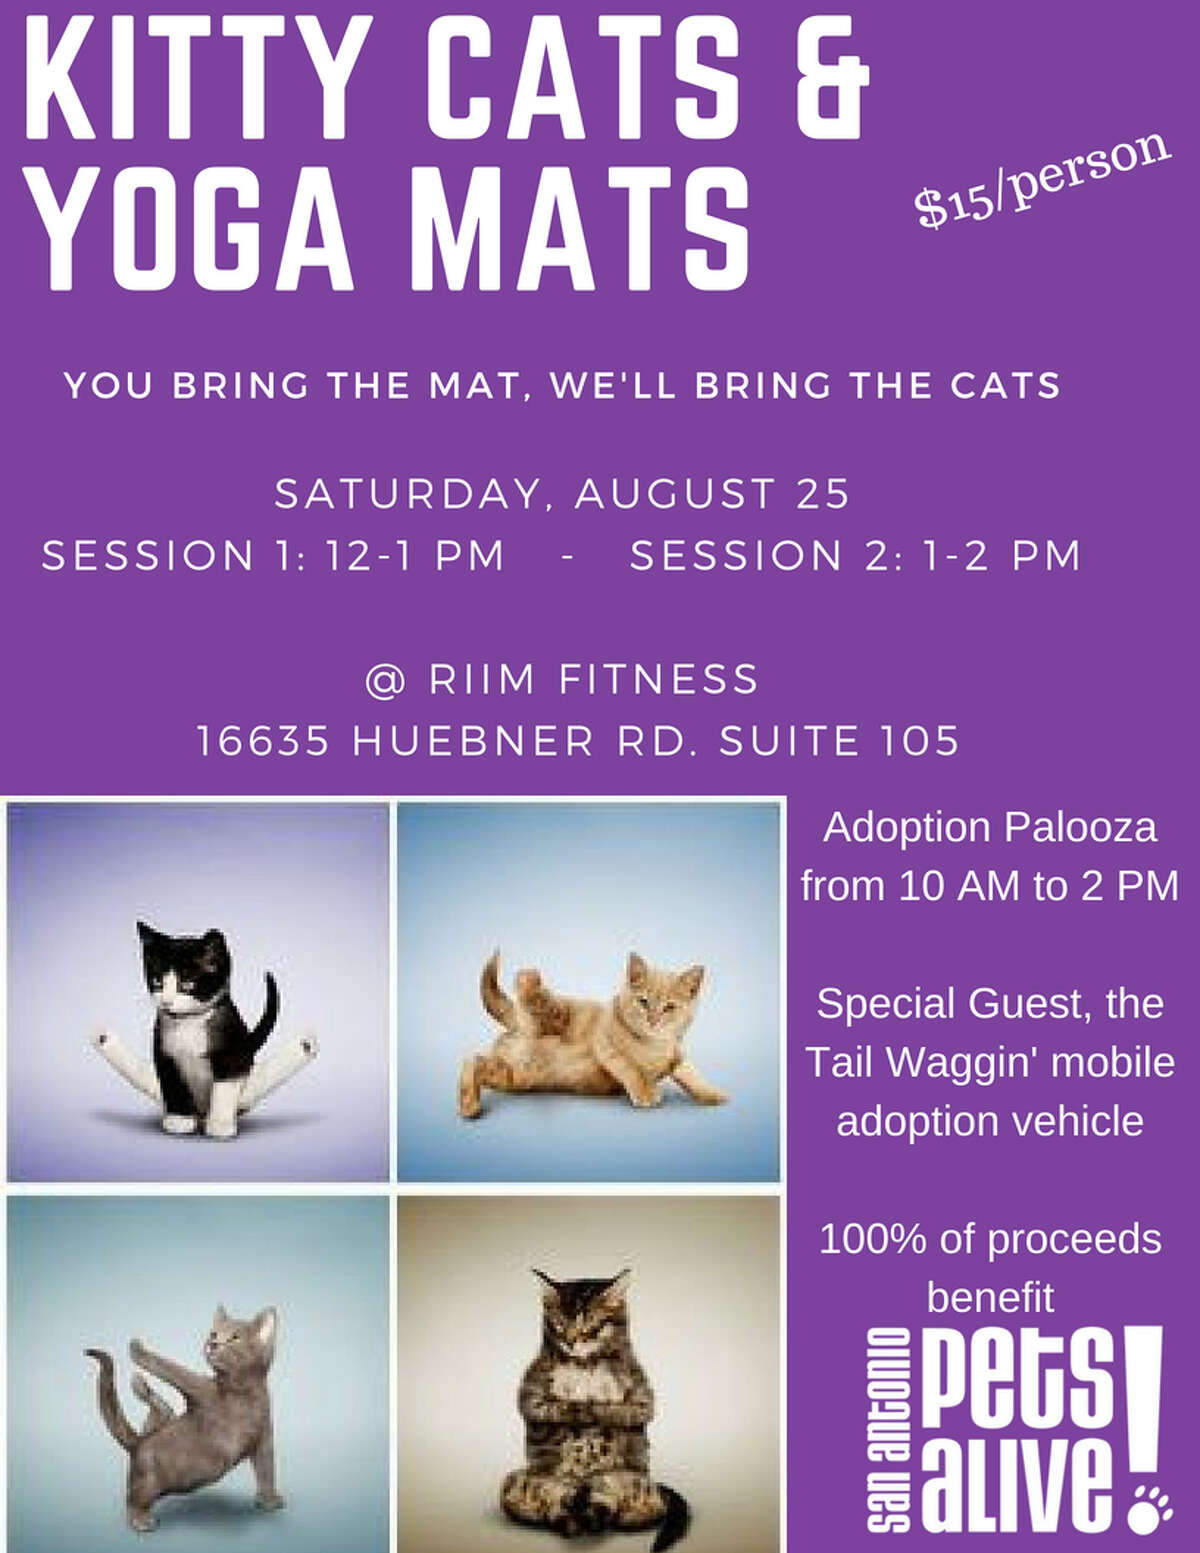 San Antonio Pets Alive will be offering up cats and kittens for adoption at their upcoming Kitty Yoga event.